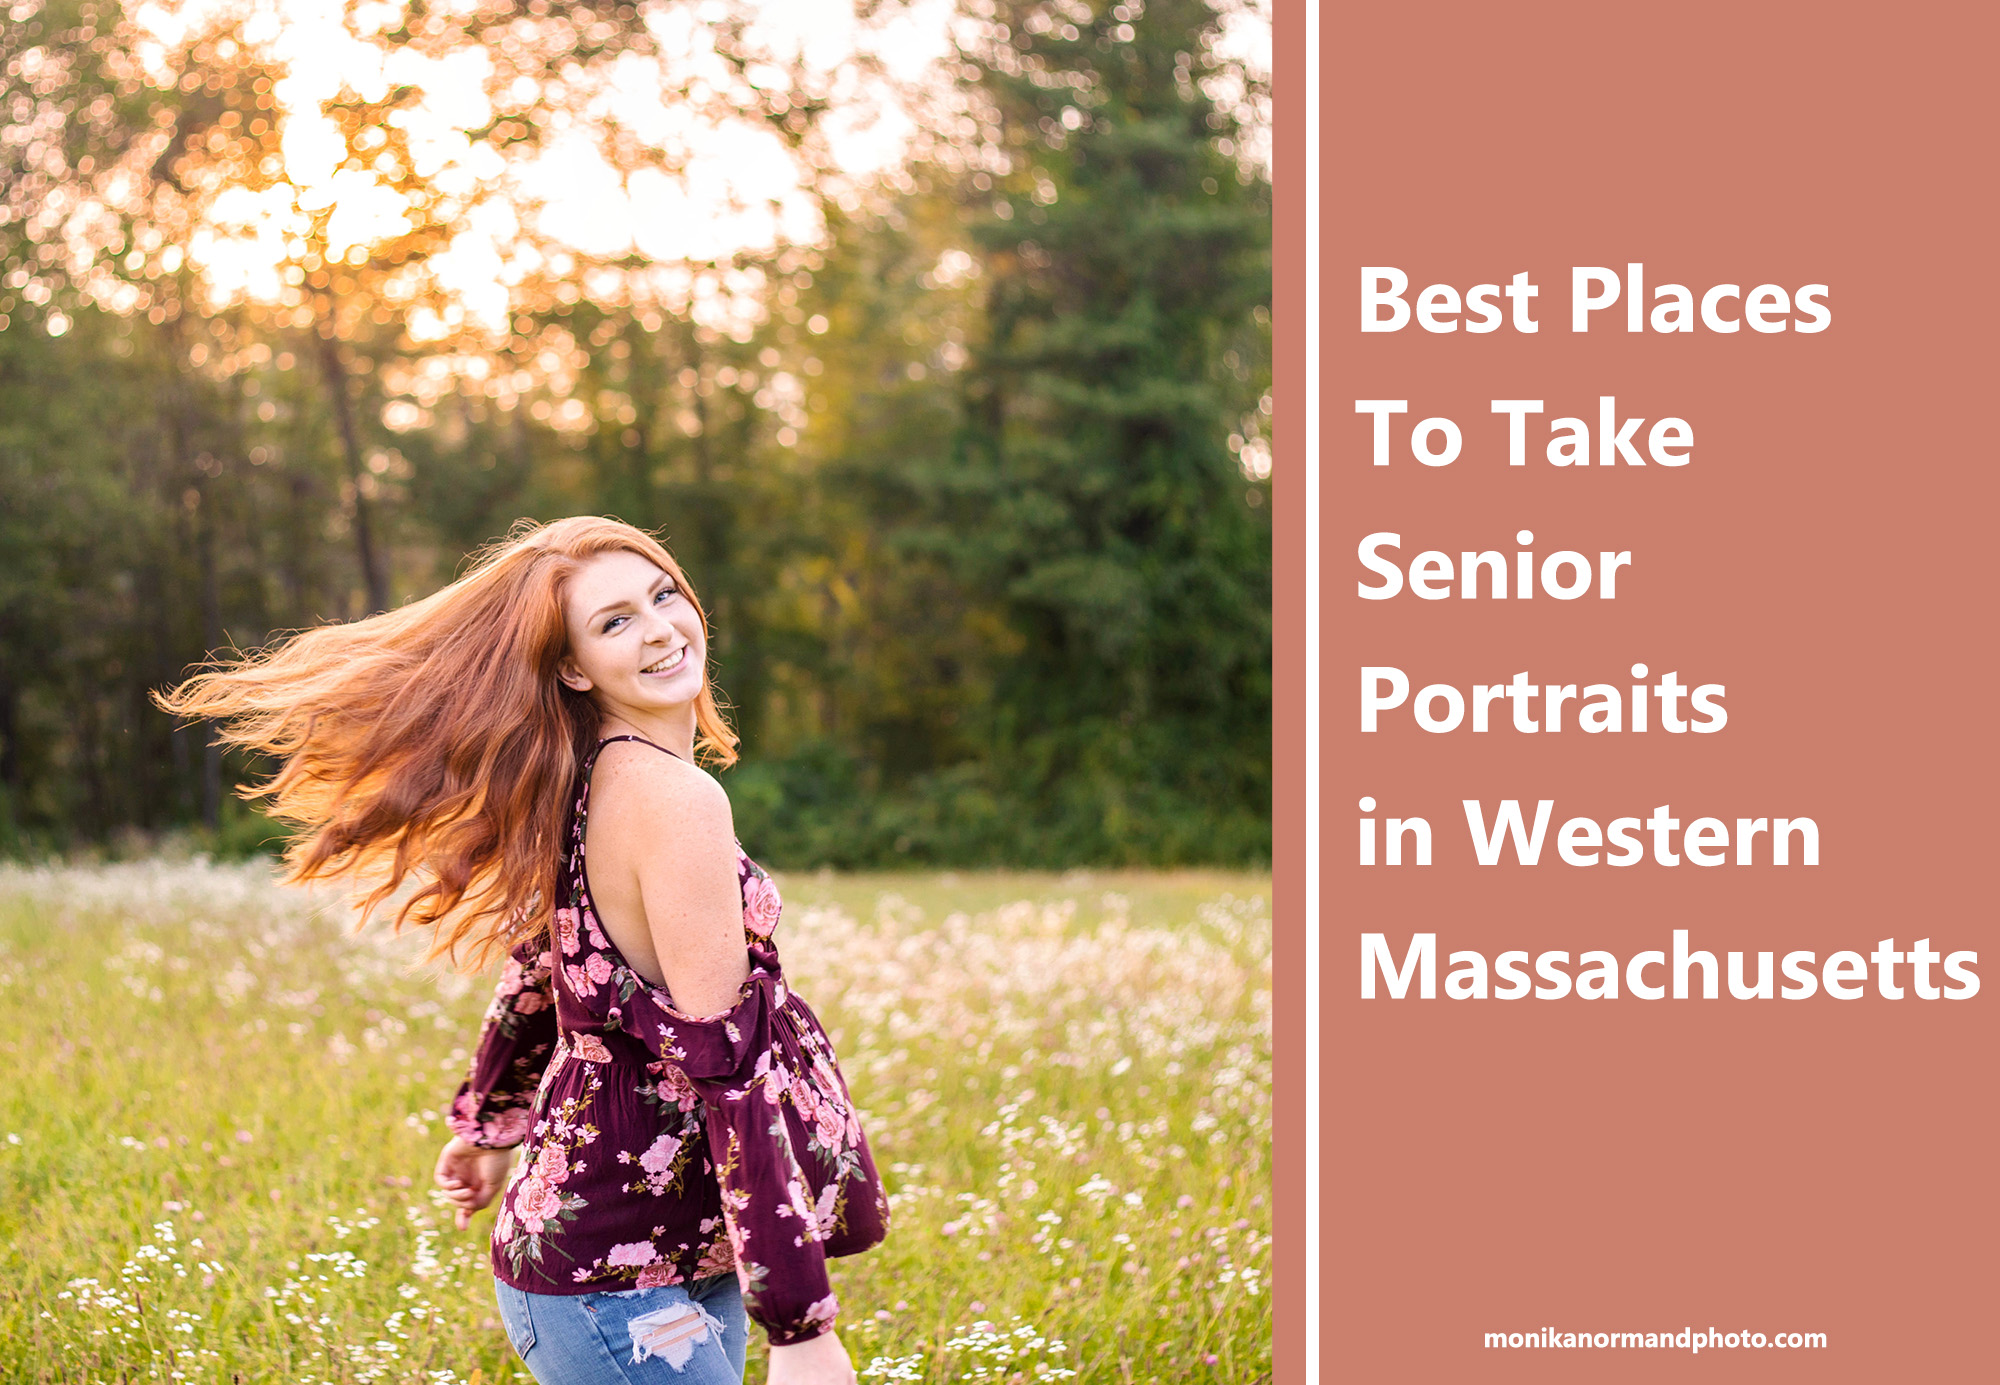 Best Places to Take Senior Portraits In Western Massachusetts